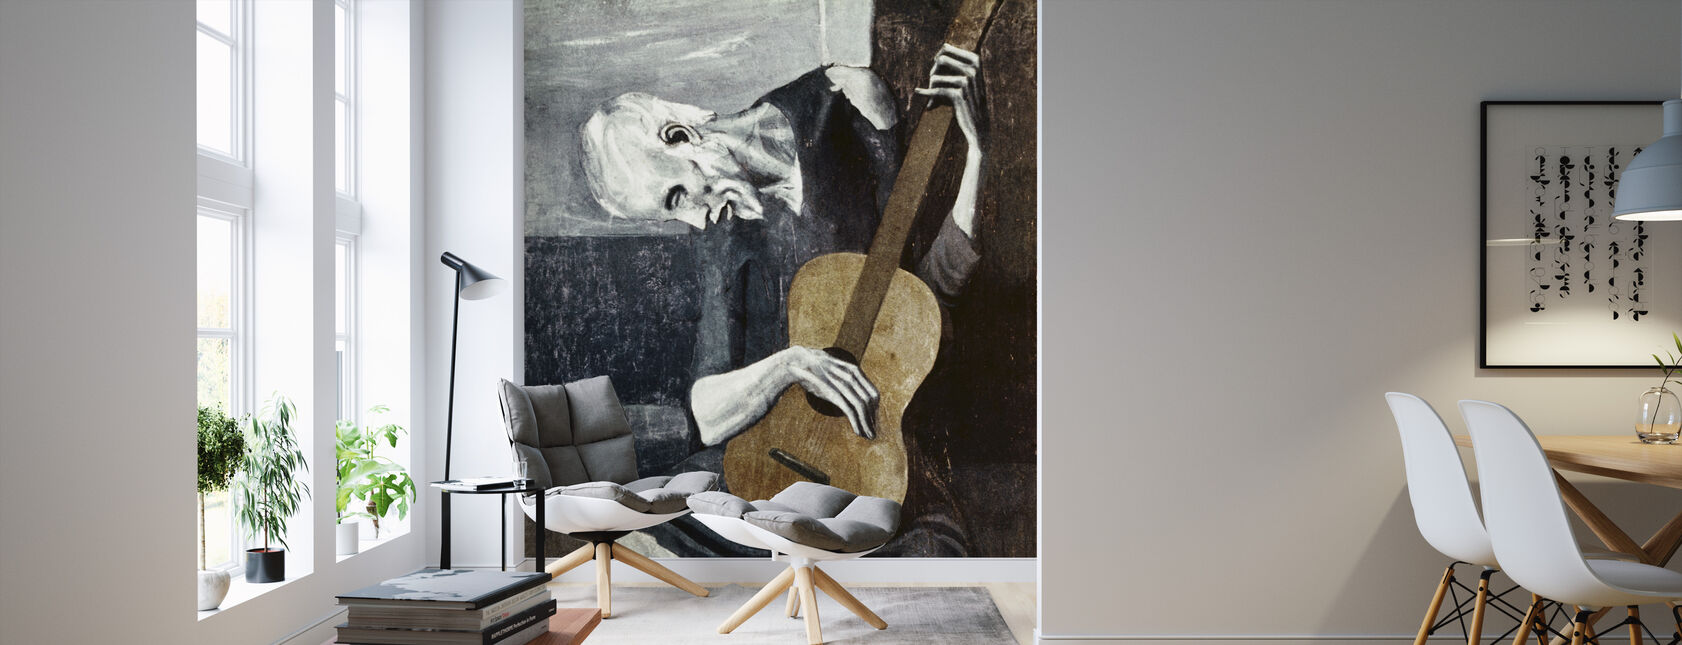 Old Guitarist - Pablo Picasso - Wallpaper - Living Room